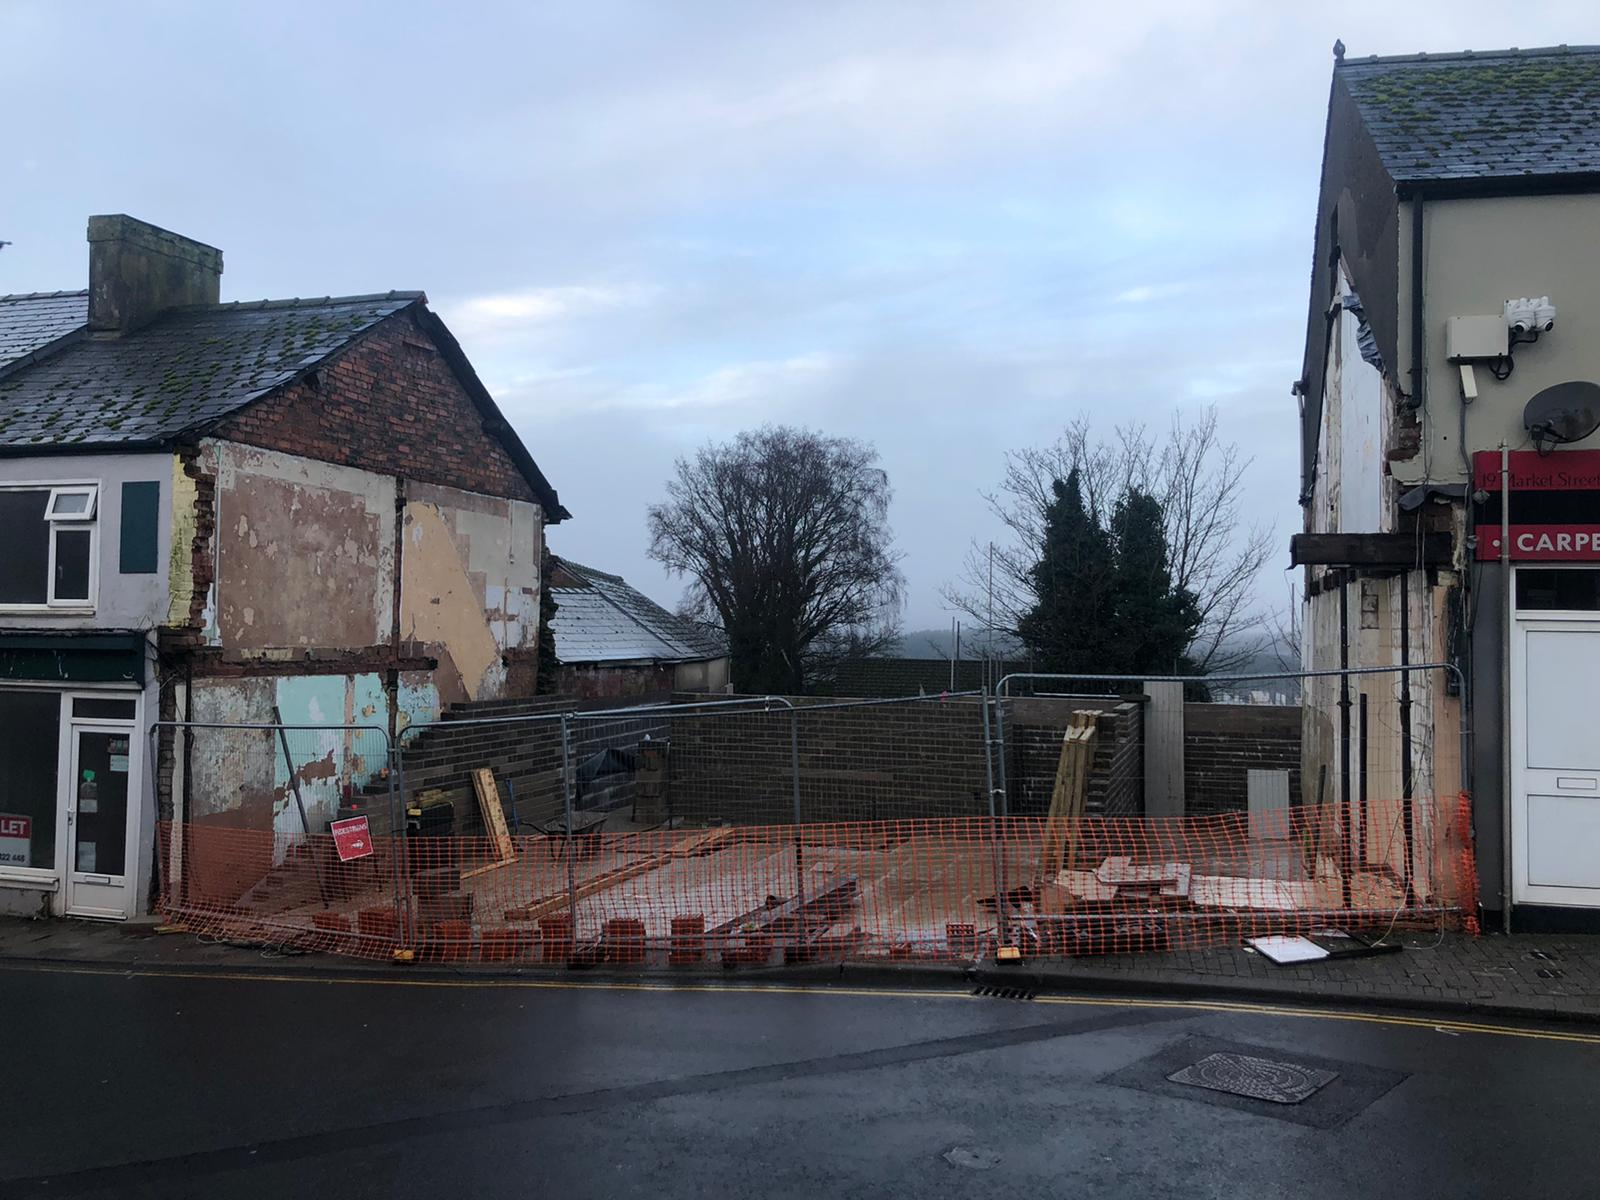 Project site at Cinderford for a residential and commercial development